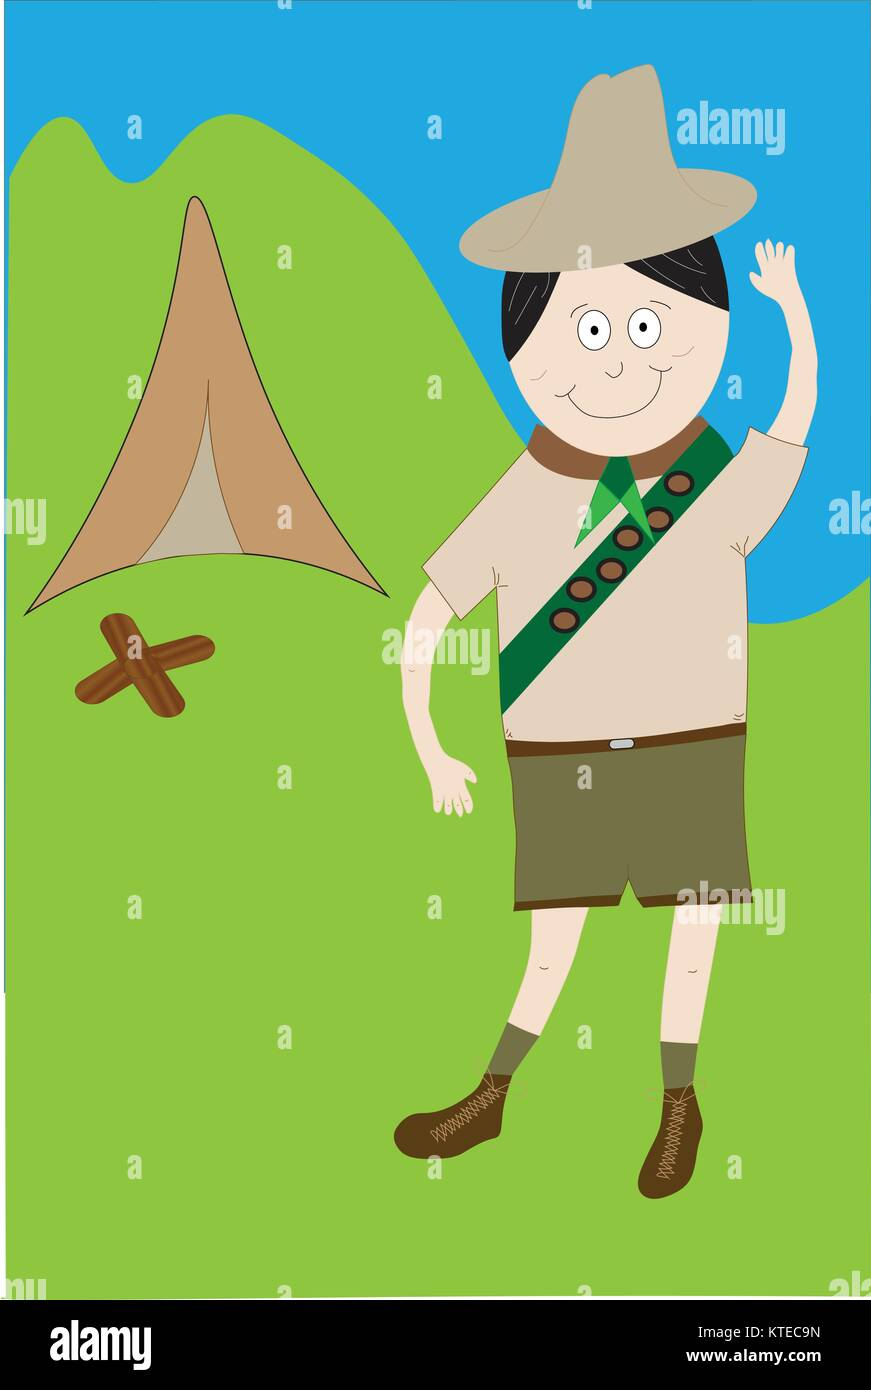 Boy scout illustrated in uniform with badges standing outdoors saluting with tent and campfire. - Stock Vector